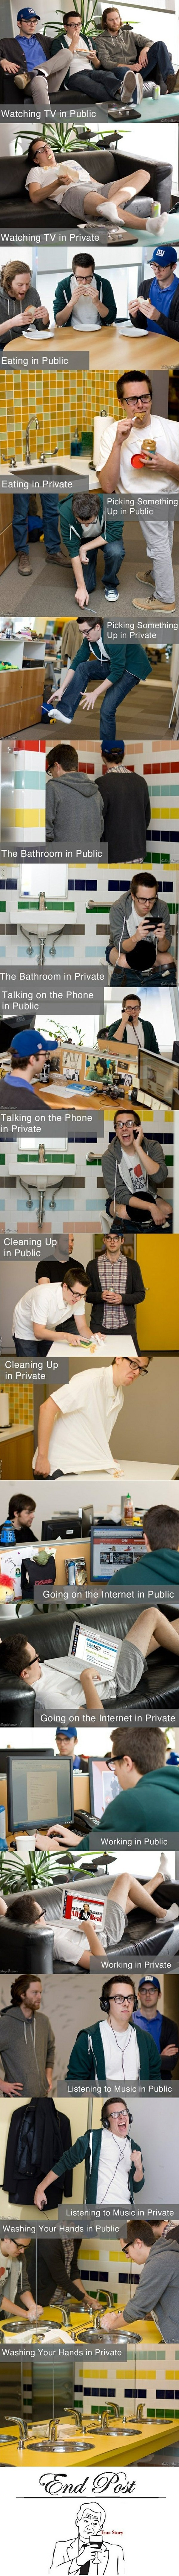 Funny pictures of public private behaviours